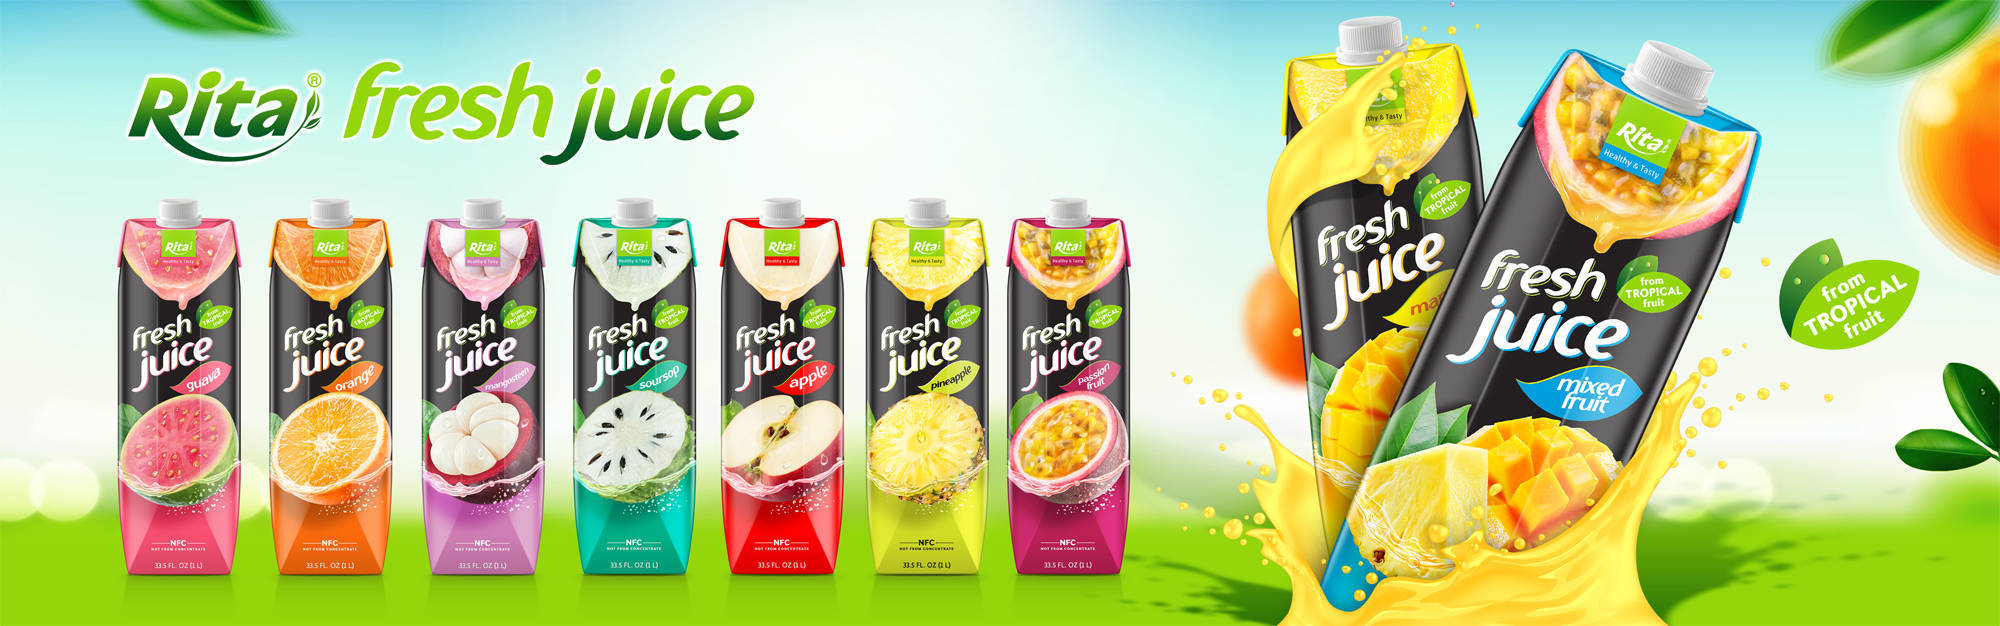 Banner Rita fresh juice